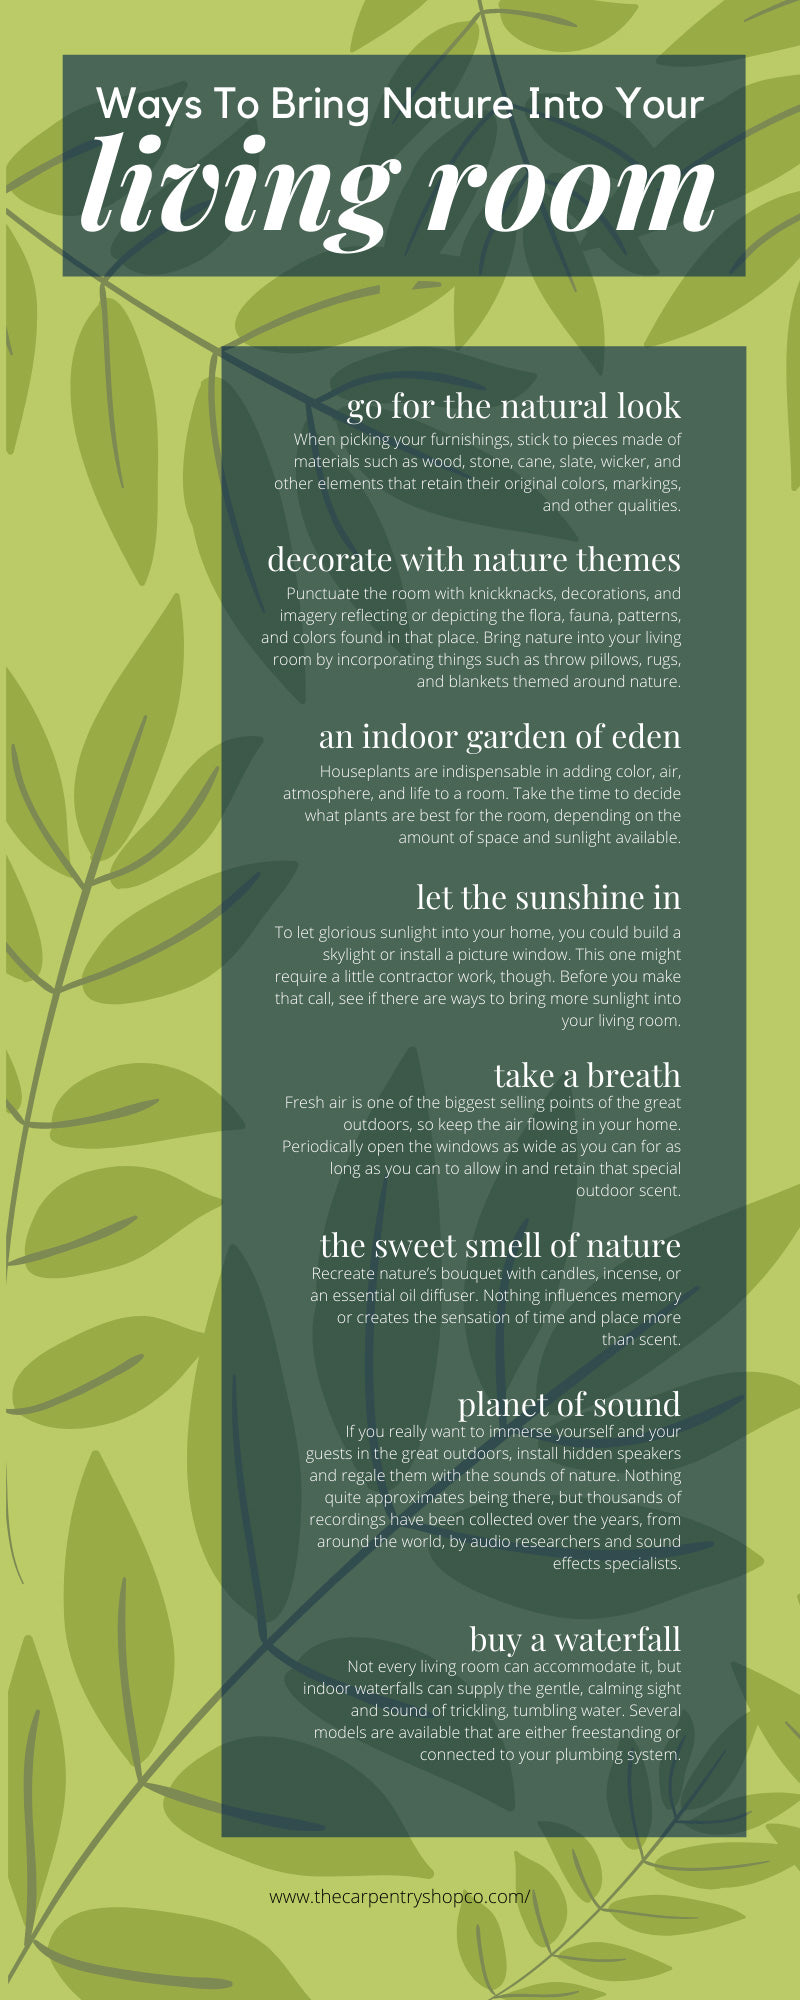 Ways To Bring Nature Into Your Living Room